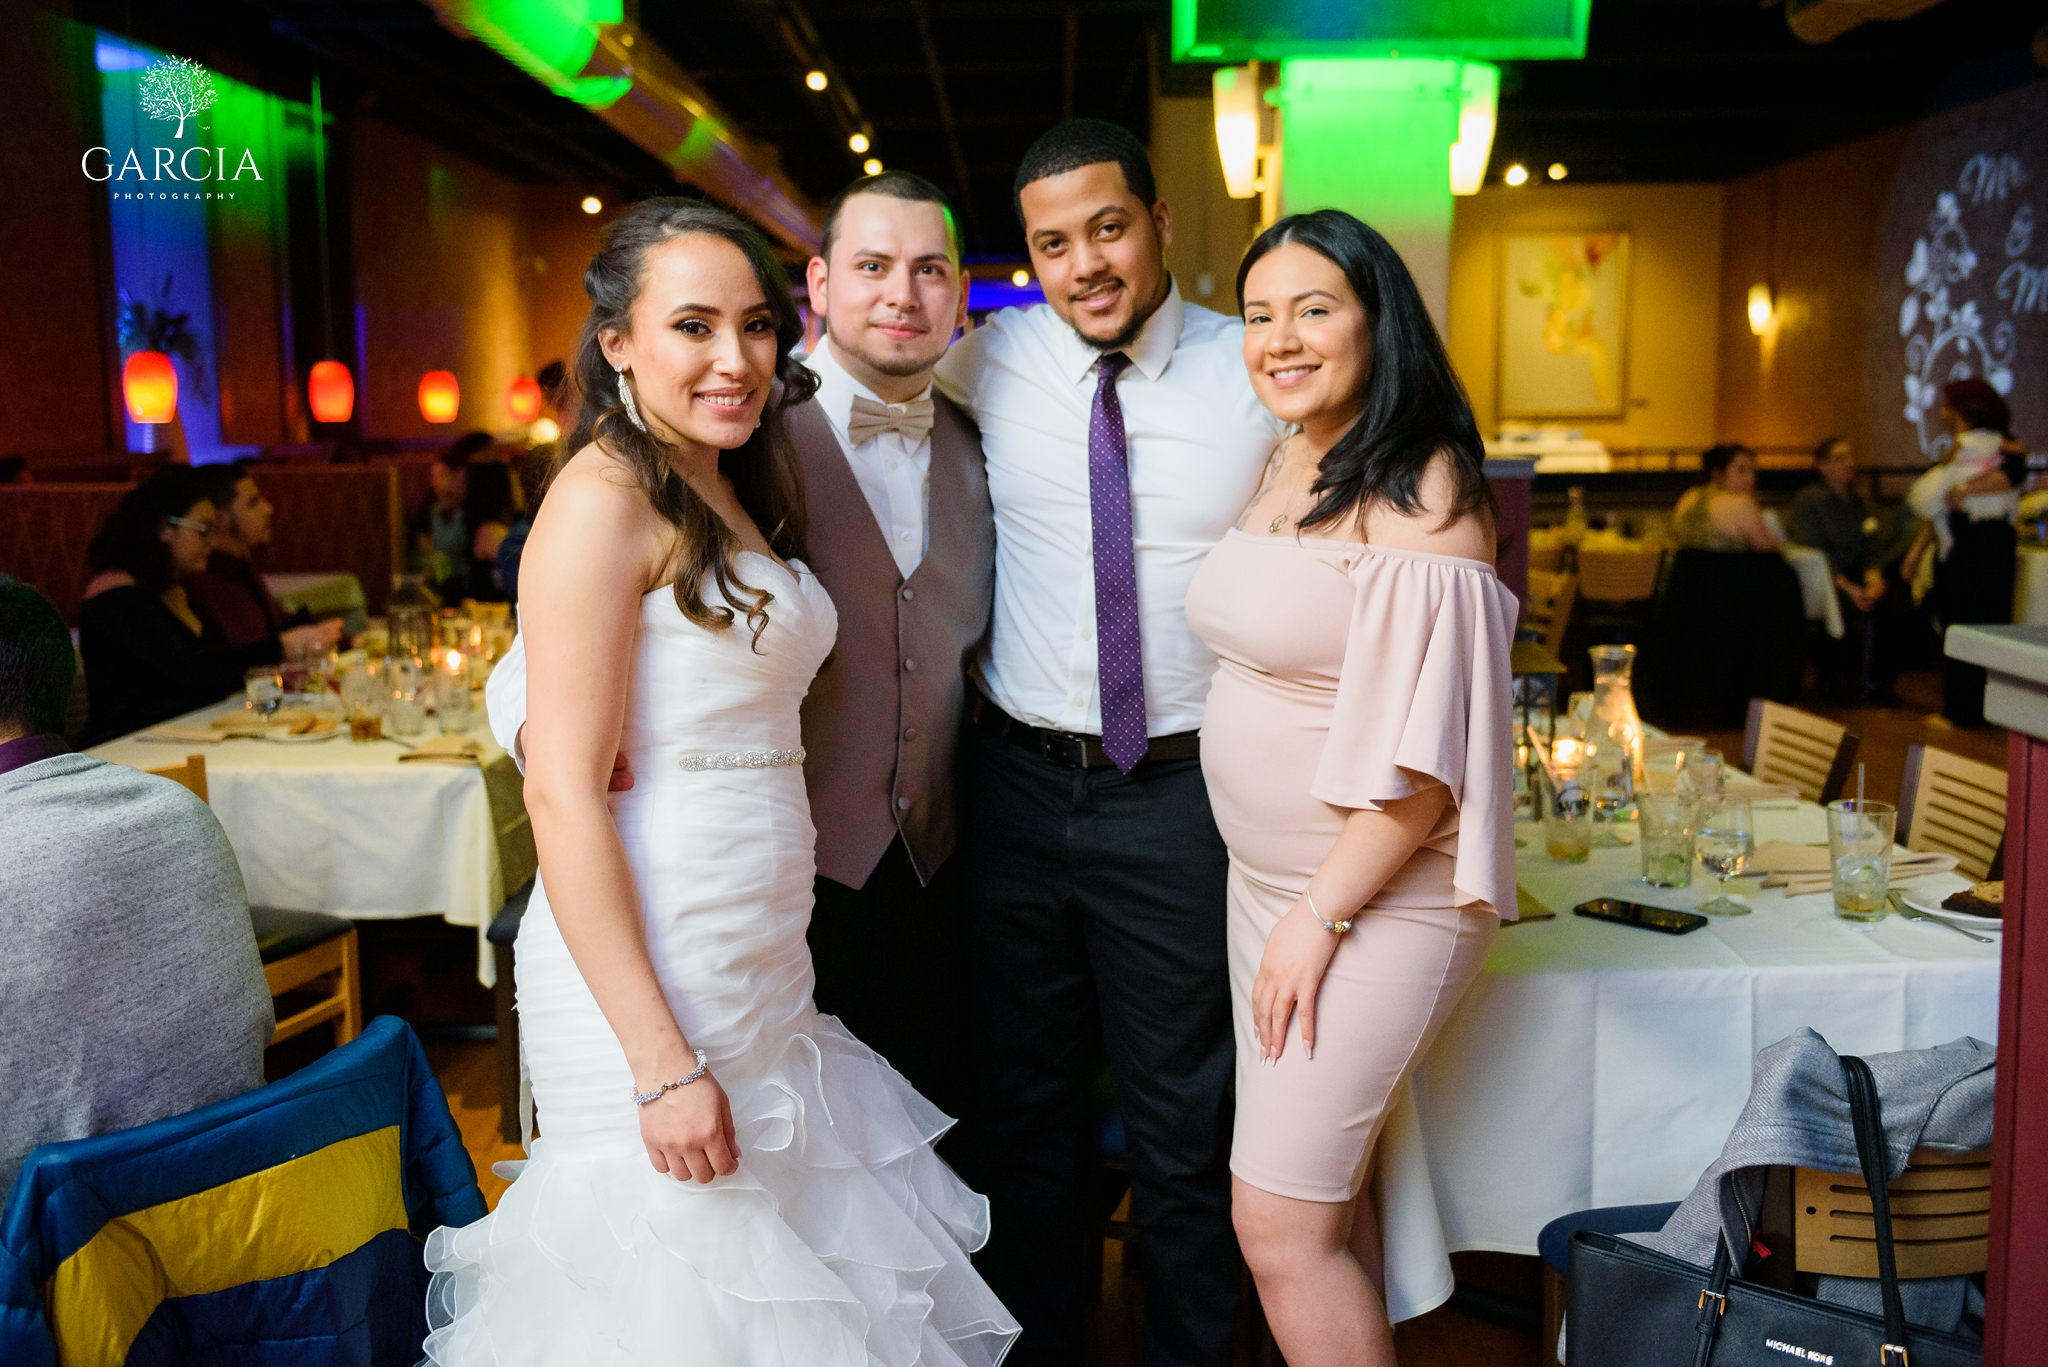 Emily-Junior-Wedding-Garcia-Photography-4521.jpg